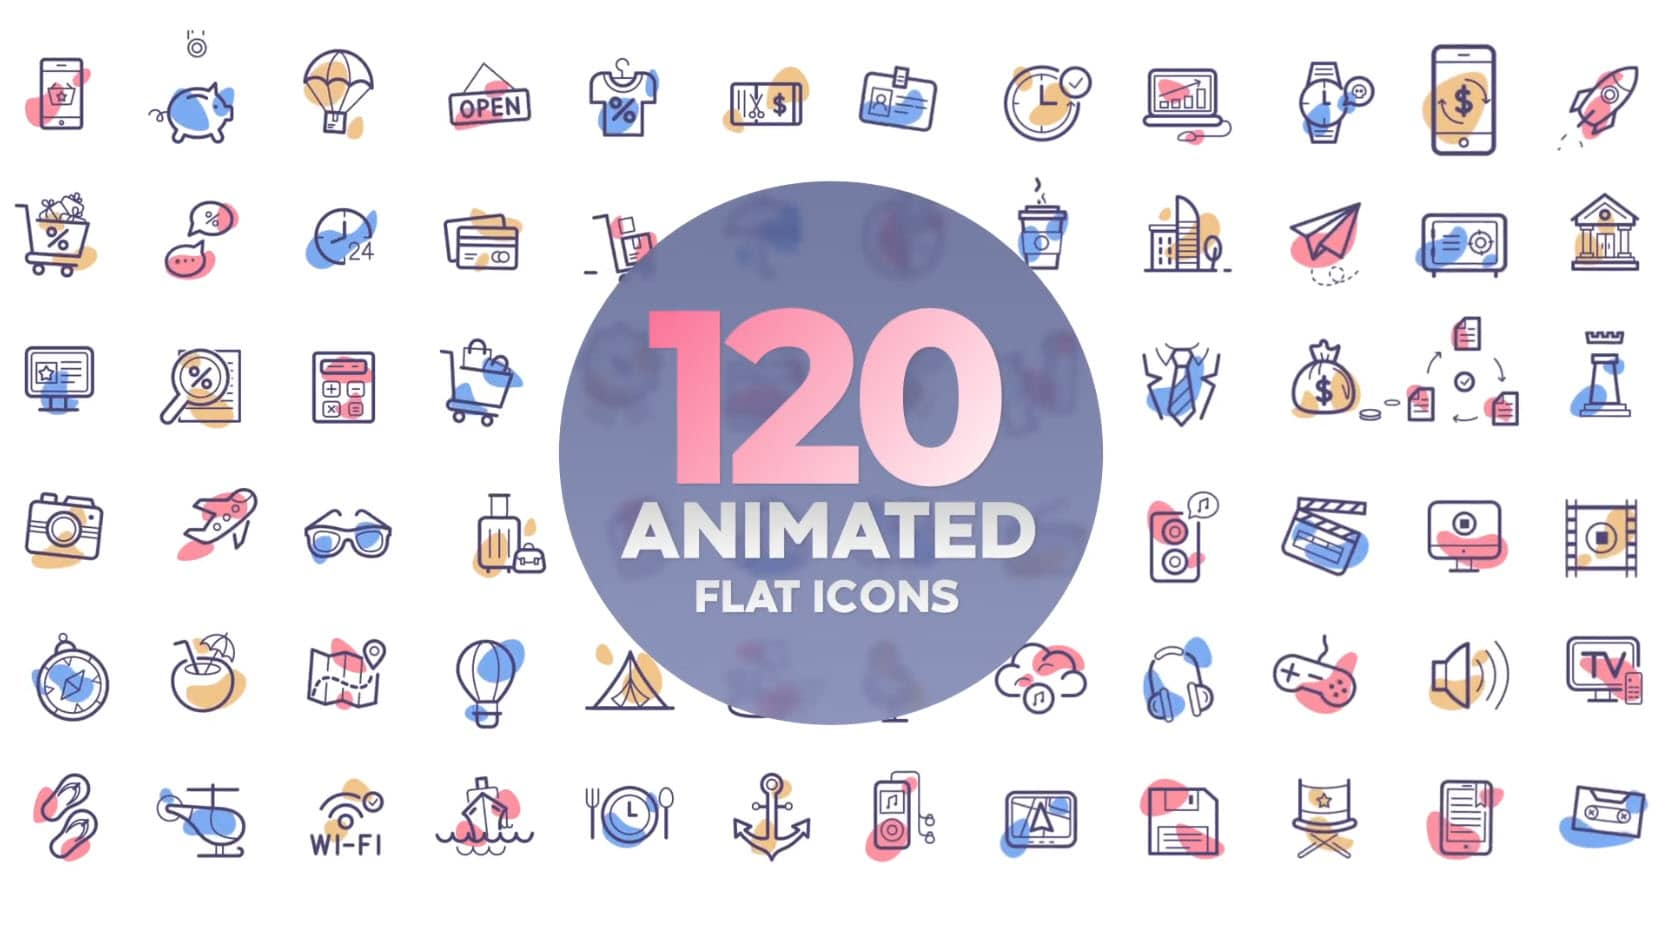 120 Animated Flat Icons for After Effects